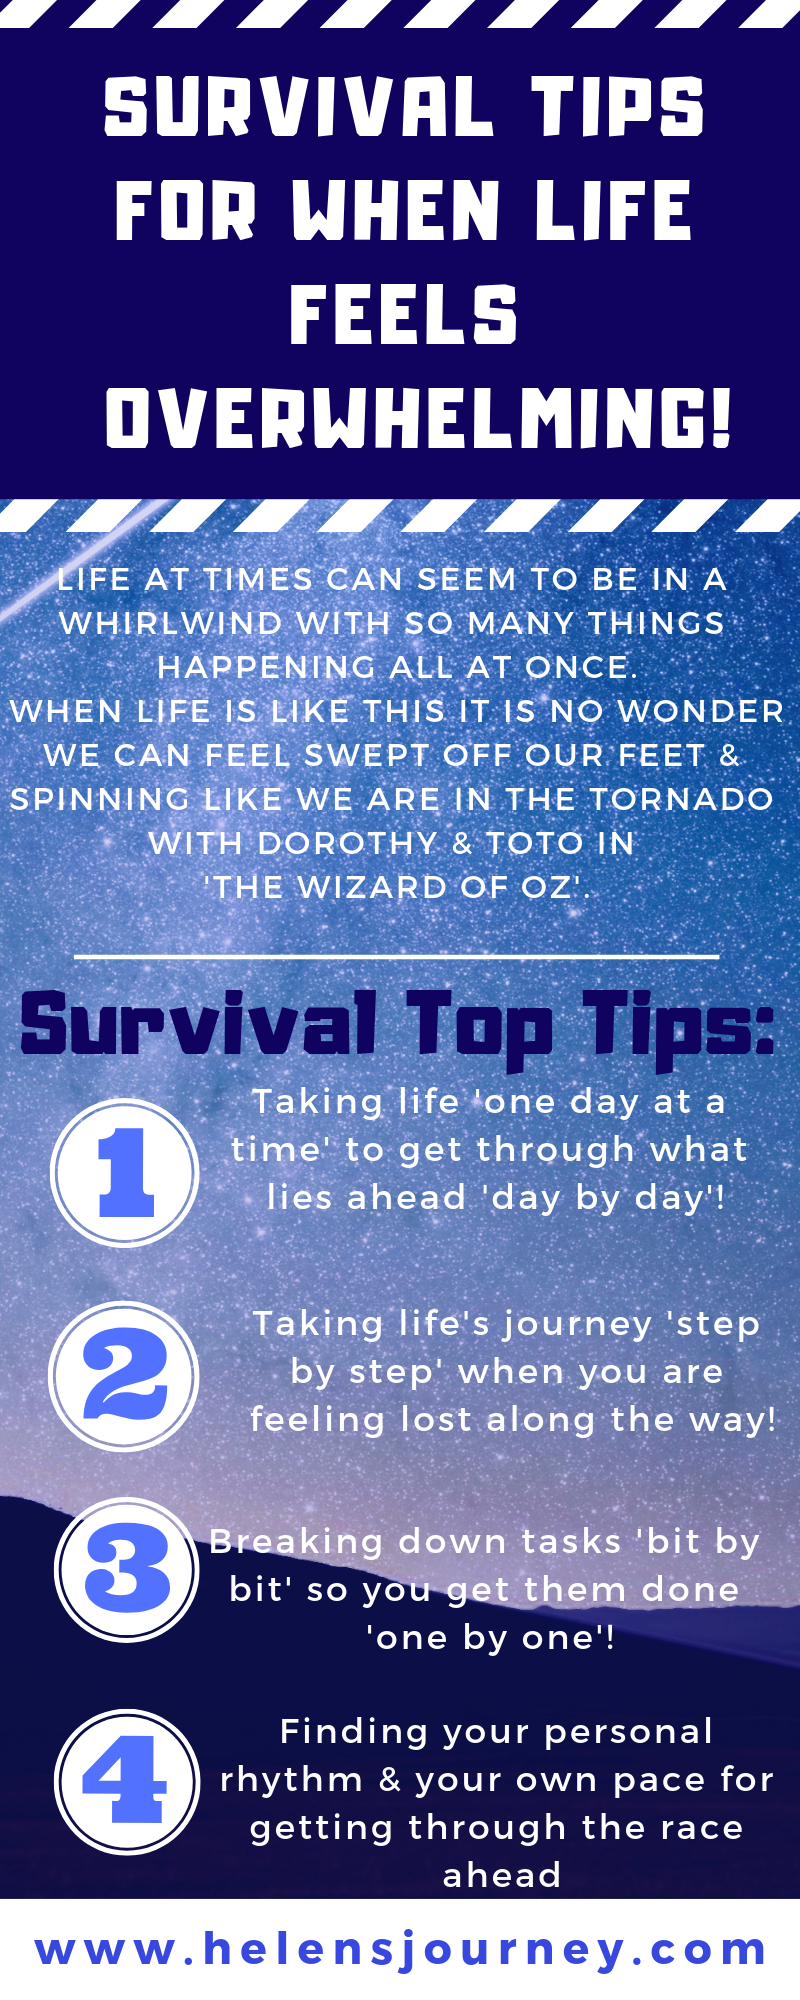 top survival tips for when life feels overwhelming by helen's journey blog